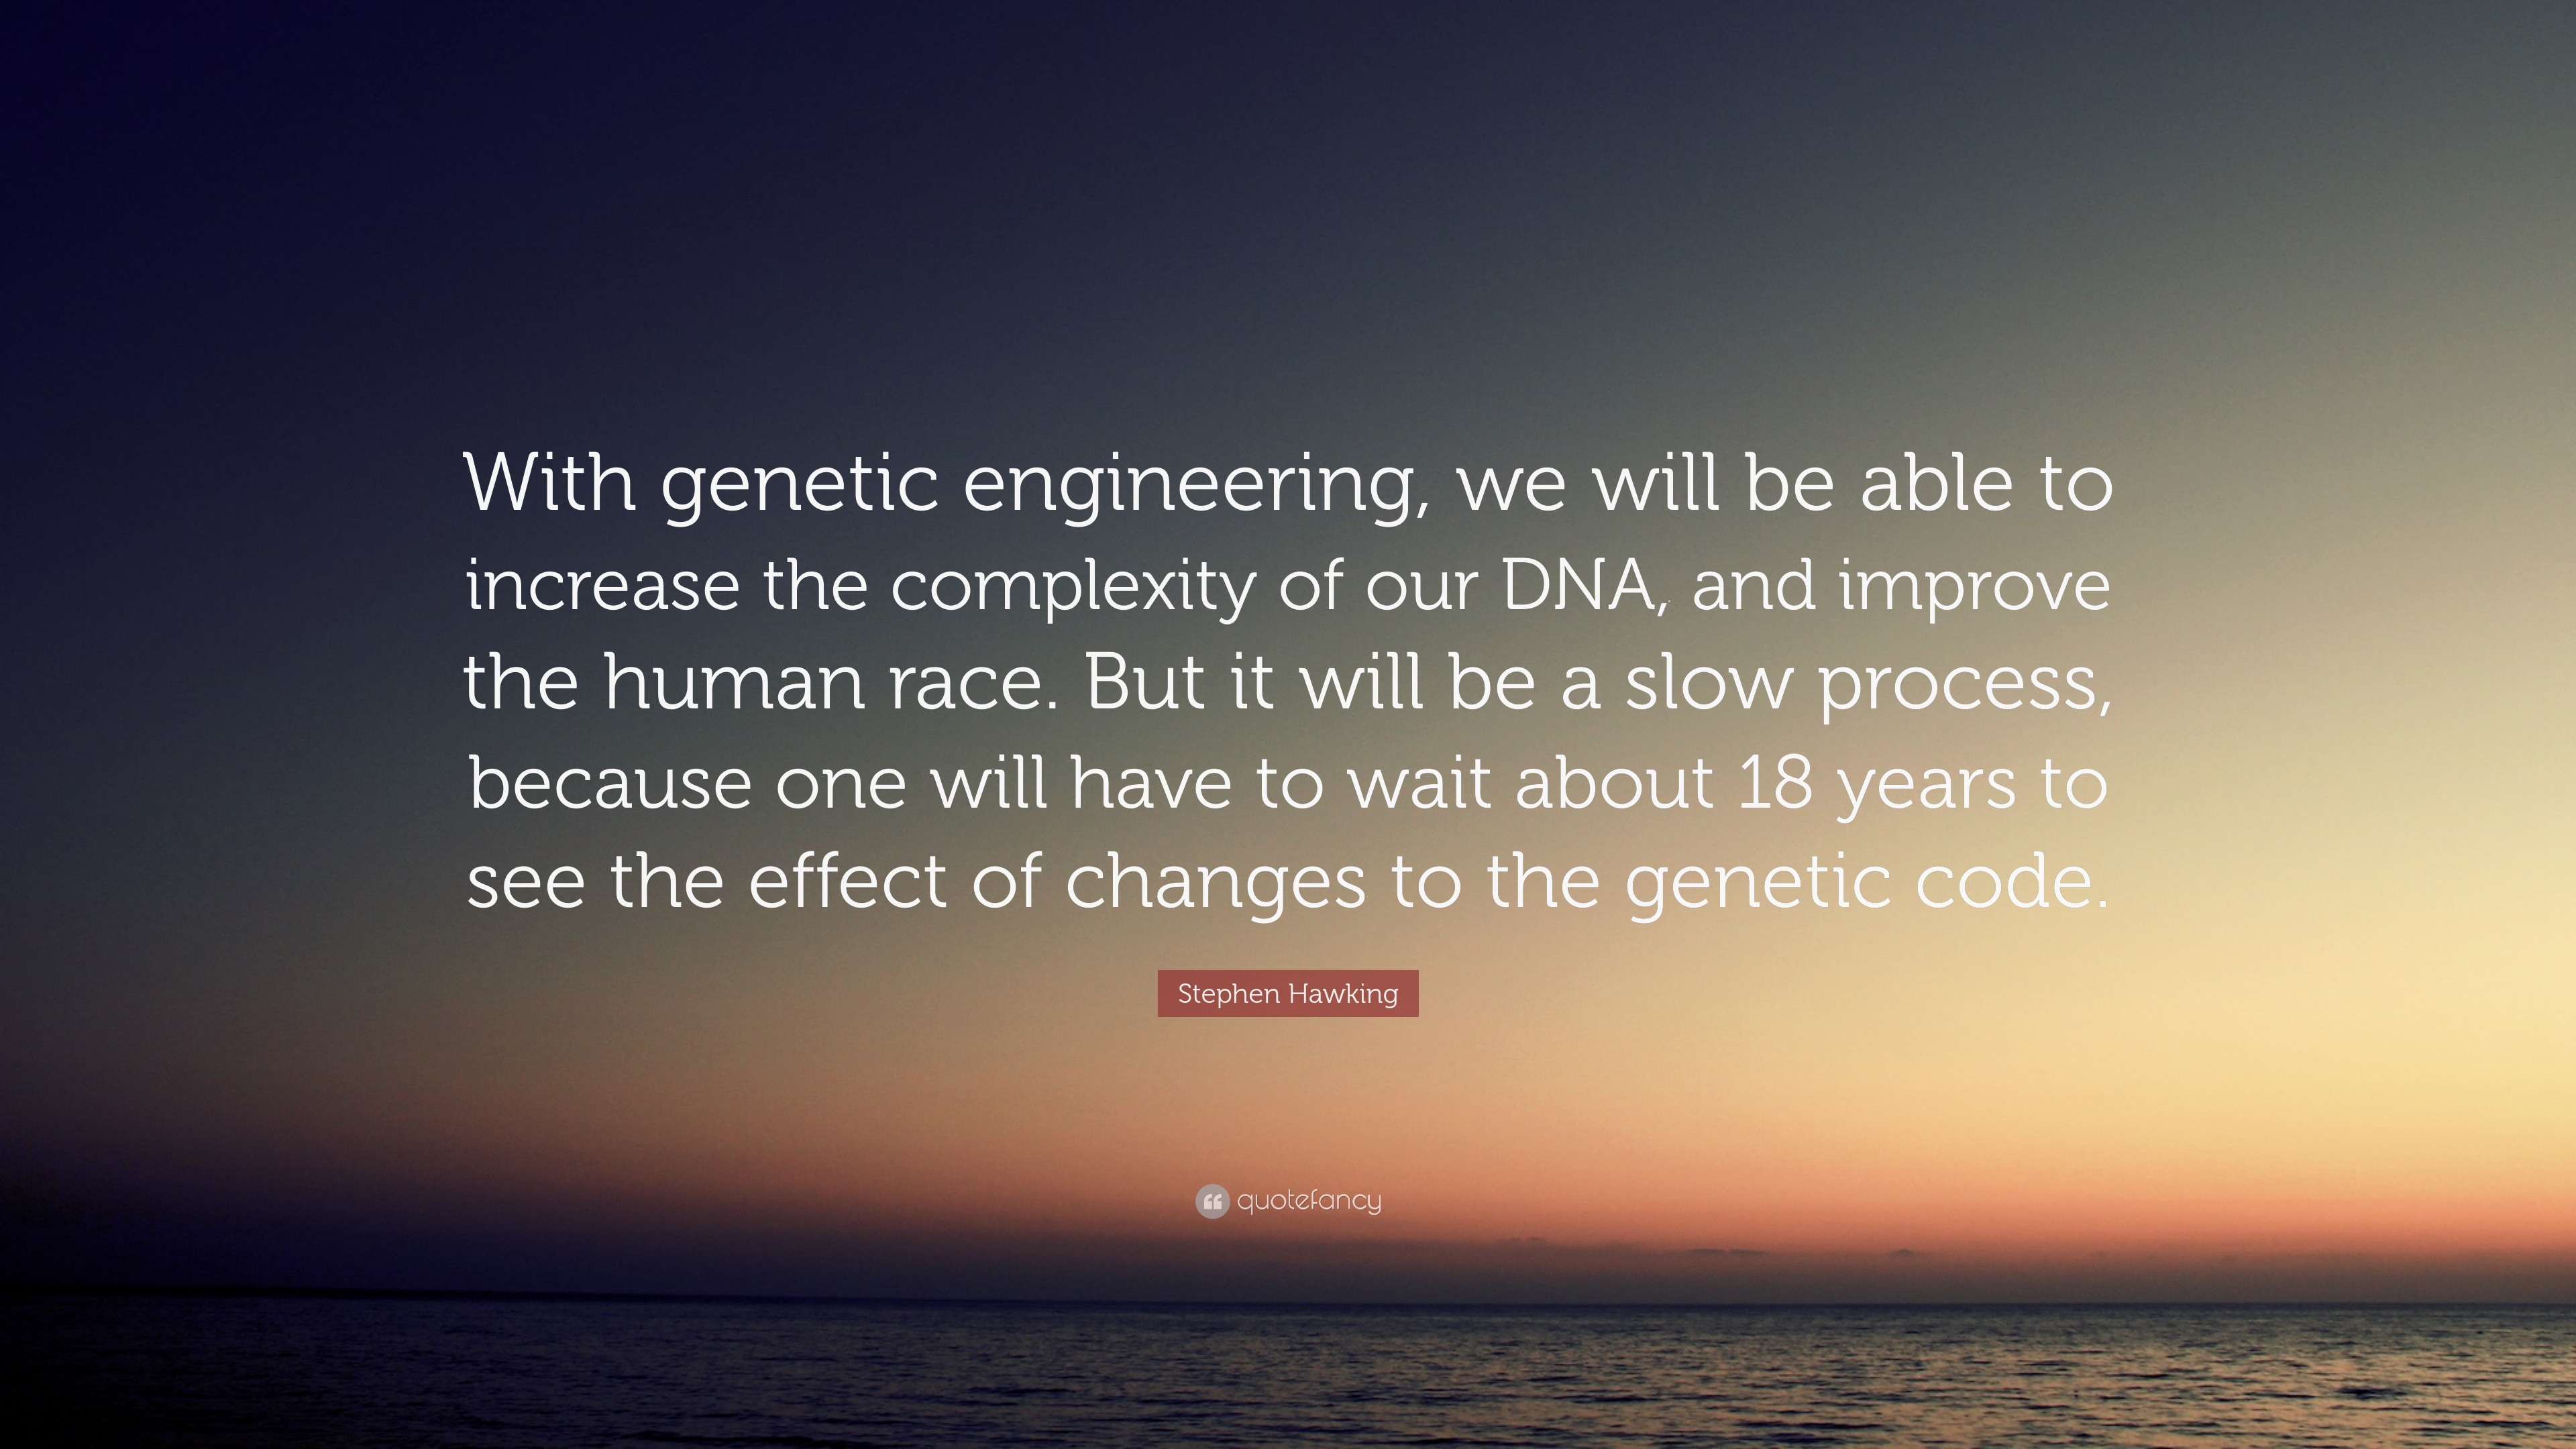 Human, Social, and Environmental Impacts of Human Genetic Engineering